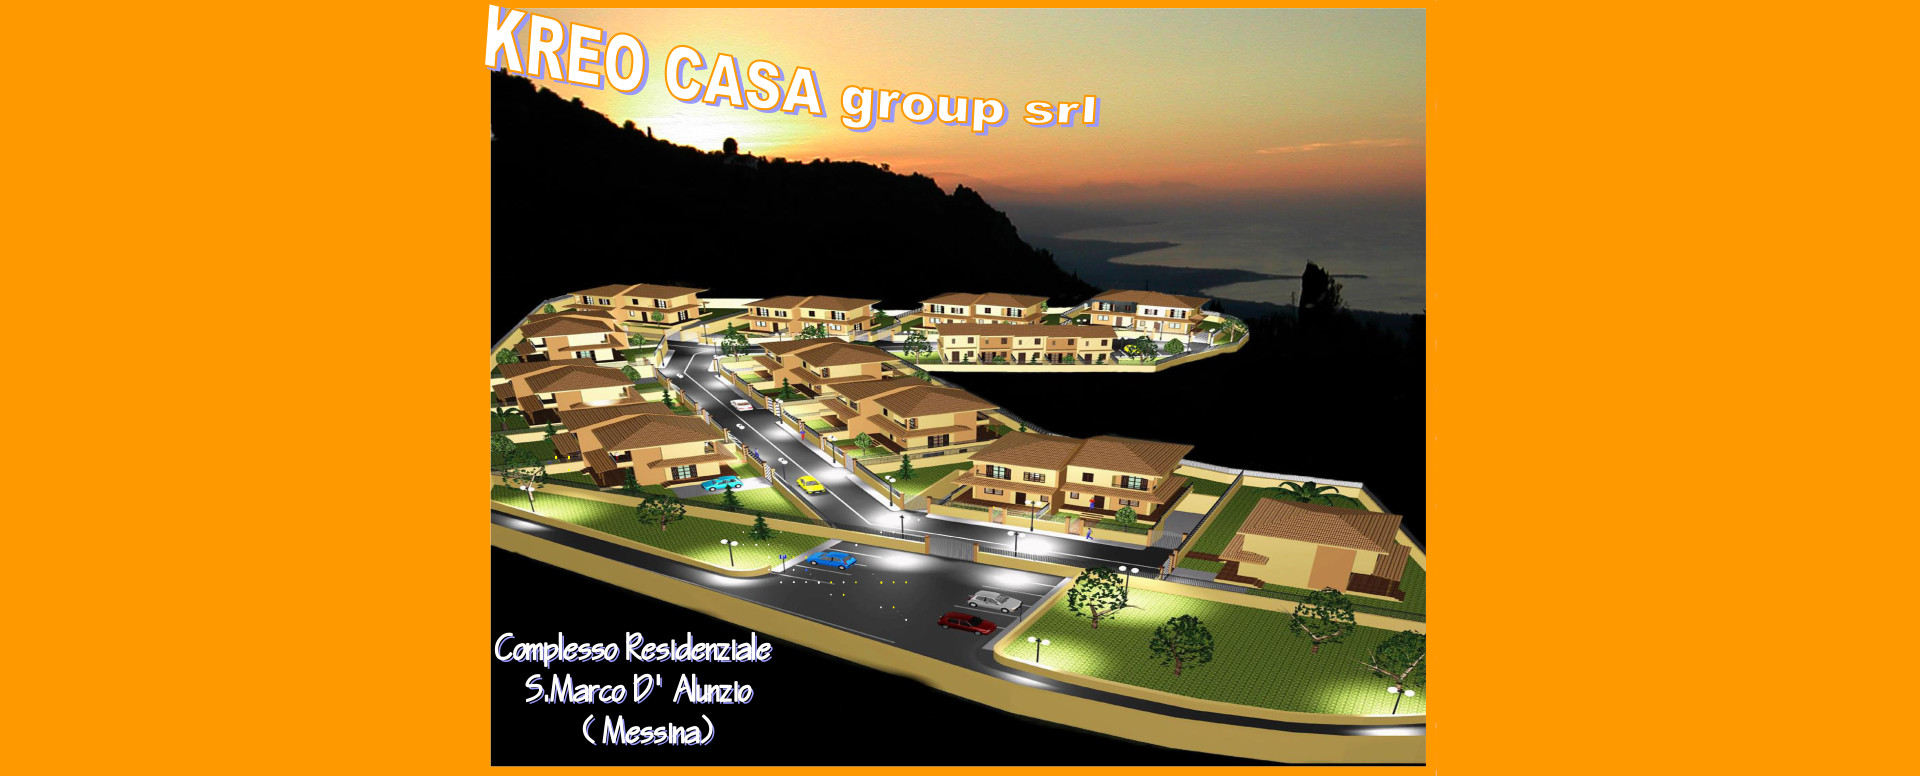 KREO CASA GROUP SRL